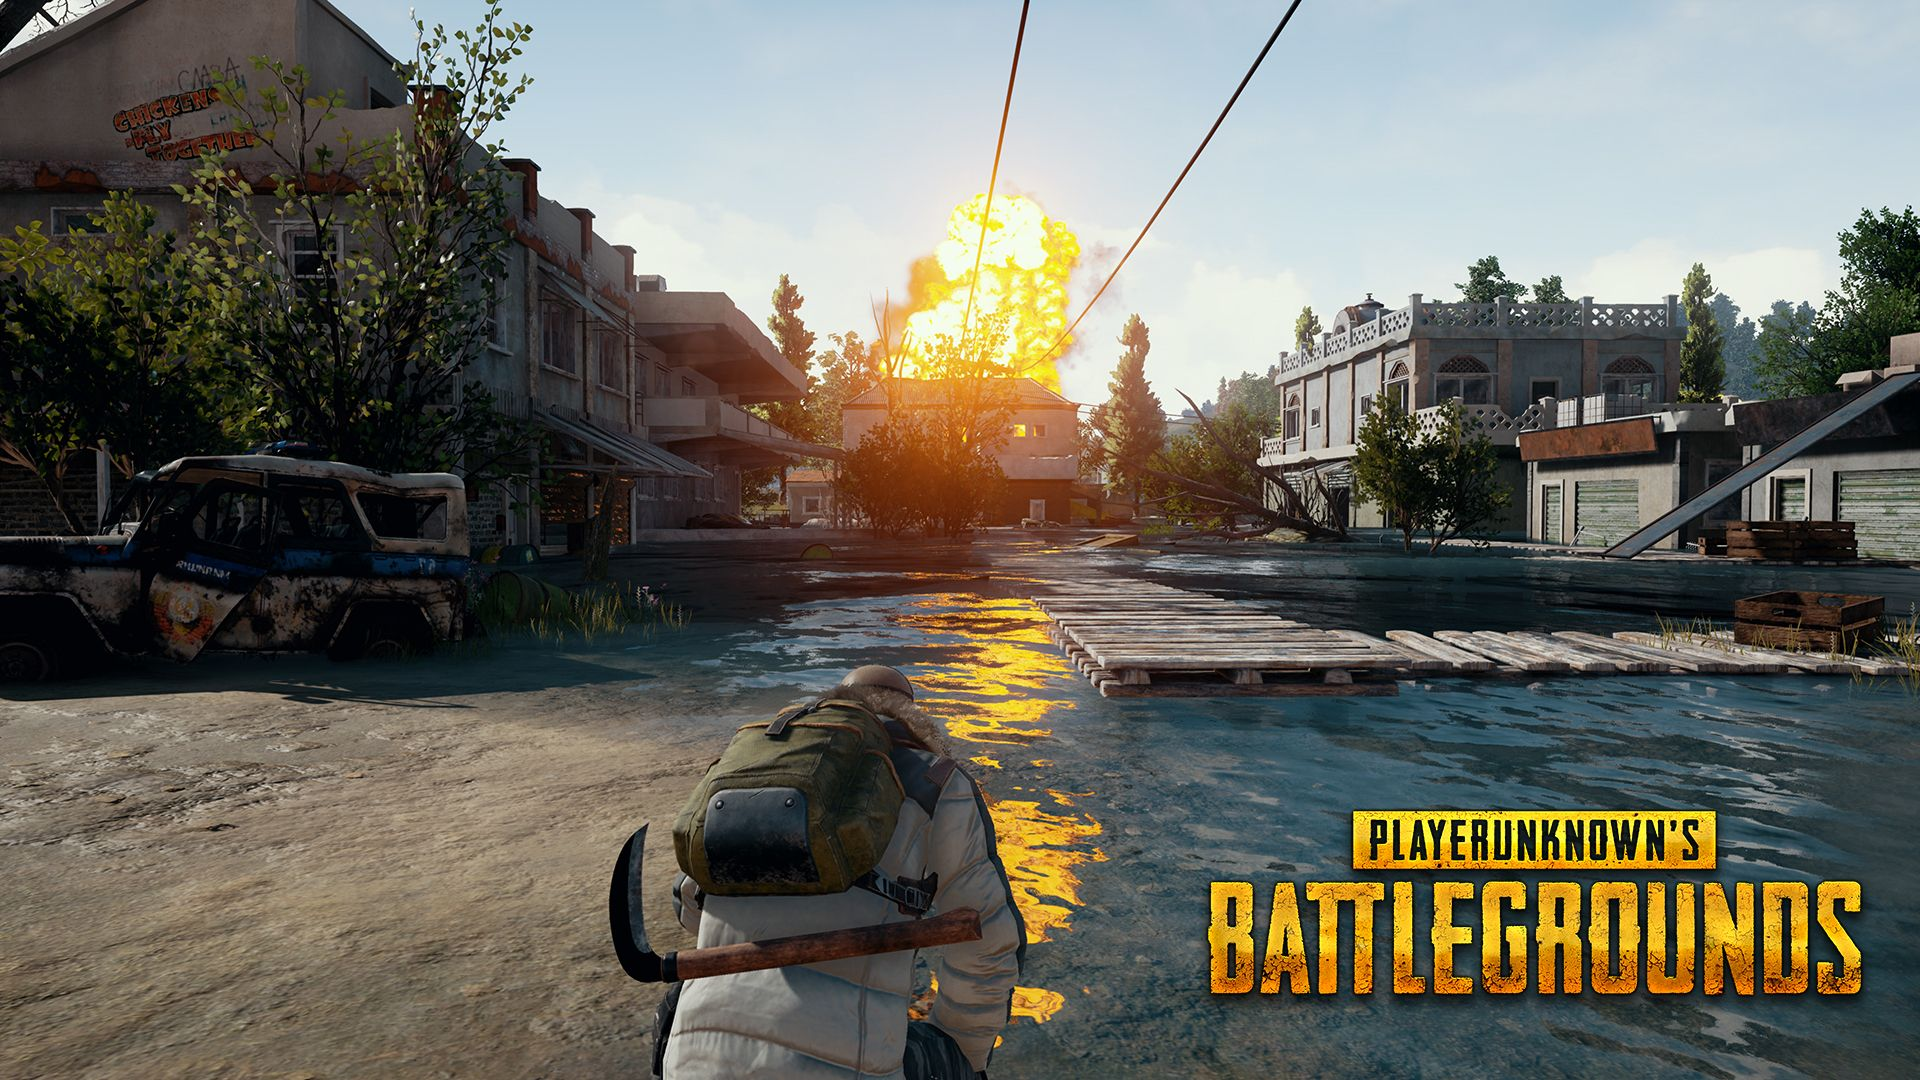 wp2474966 pubg 4k wallpapers - Player Unknown's Battlegrounds (PUBG) 4K - Pubg wallpaper phone, pubg wallpaper iphone, pubg wallpaper 1920x1080 hd, pubg hd wallpapers, pubg 4k wallpapers, Player Unknown's Battlegrounds 4k wallpapers